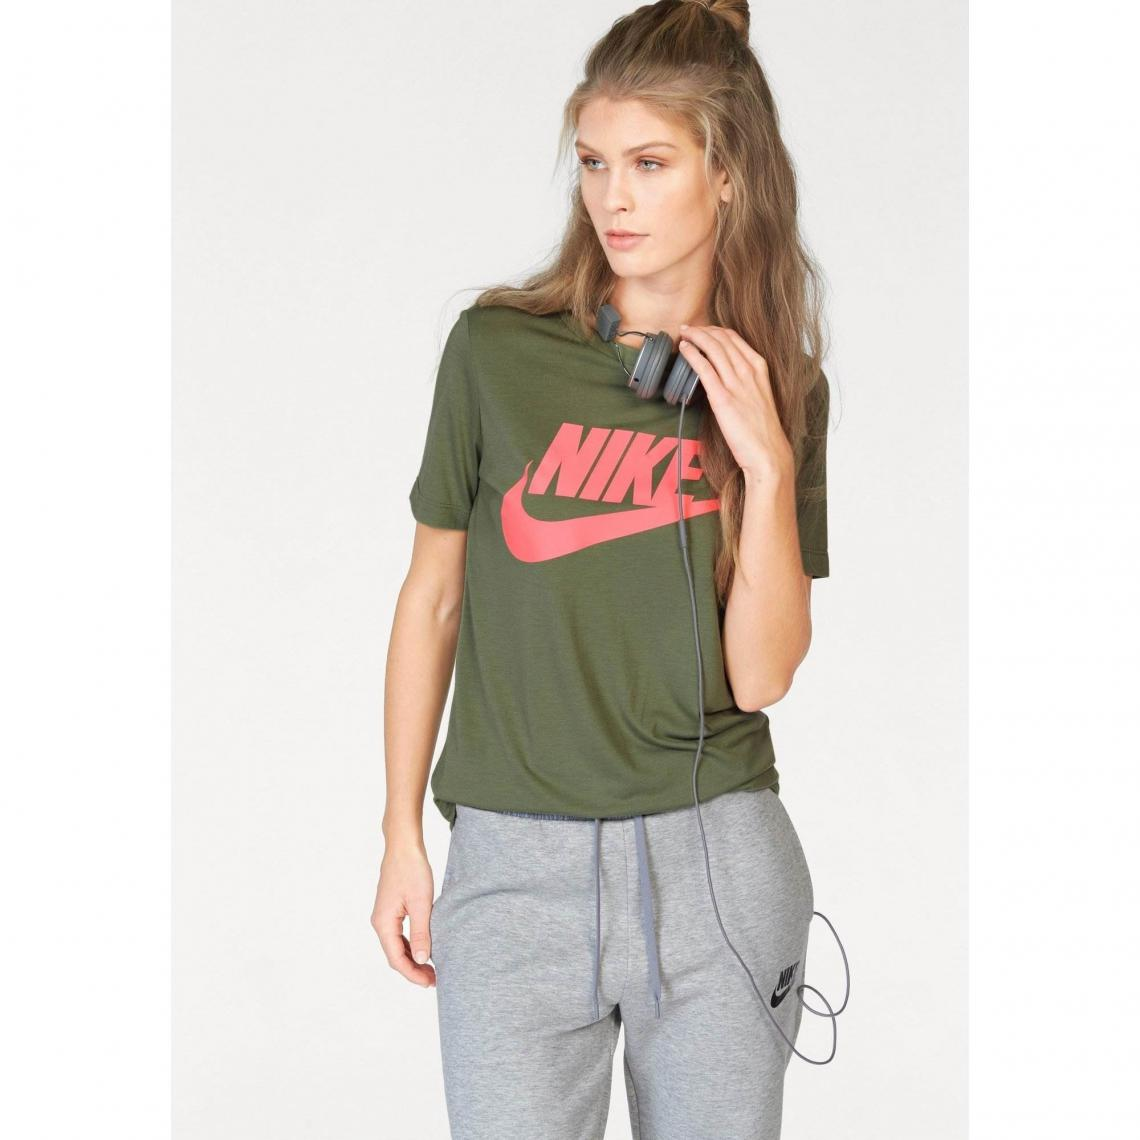 separation shoes 35c28 a8cfd T-shirt col rond manches courtes femme Essential Nike Sportswear - Kaki Nike  Femme